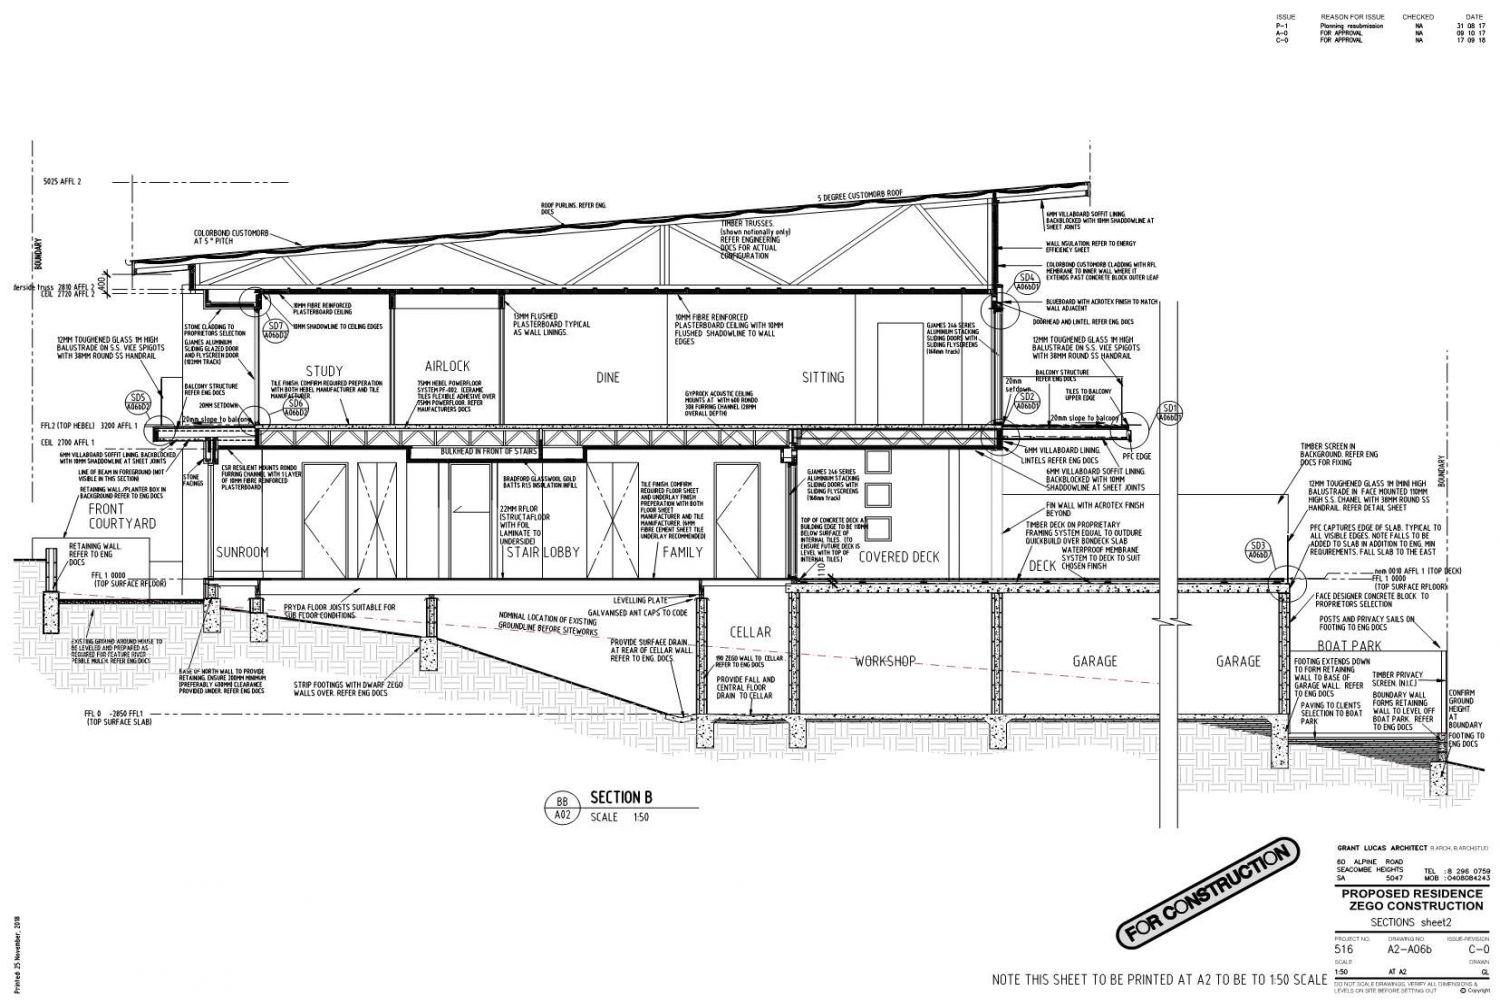 Owner Builder Zego Construction  2 storey Home at Port Noarlunga: Working Drawings Sheet 16: Section sheet 2